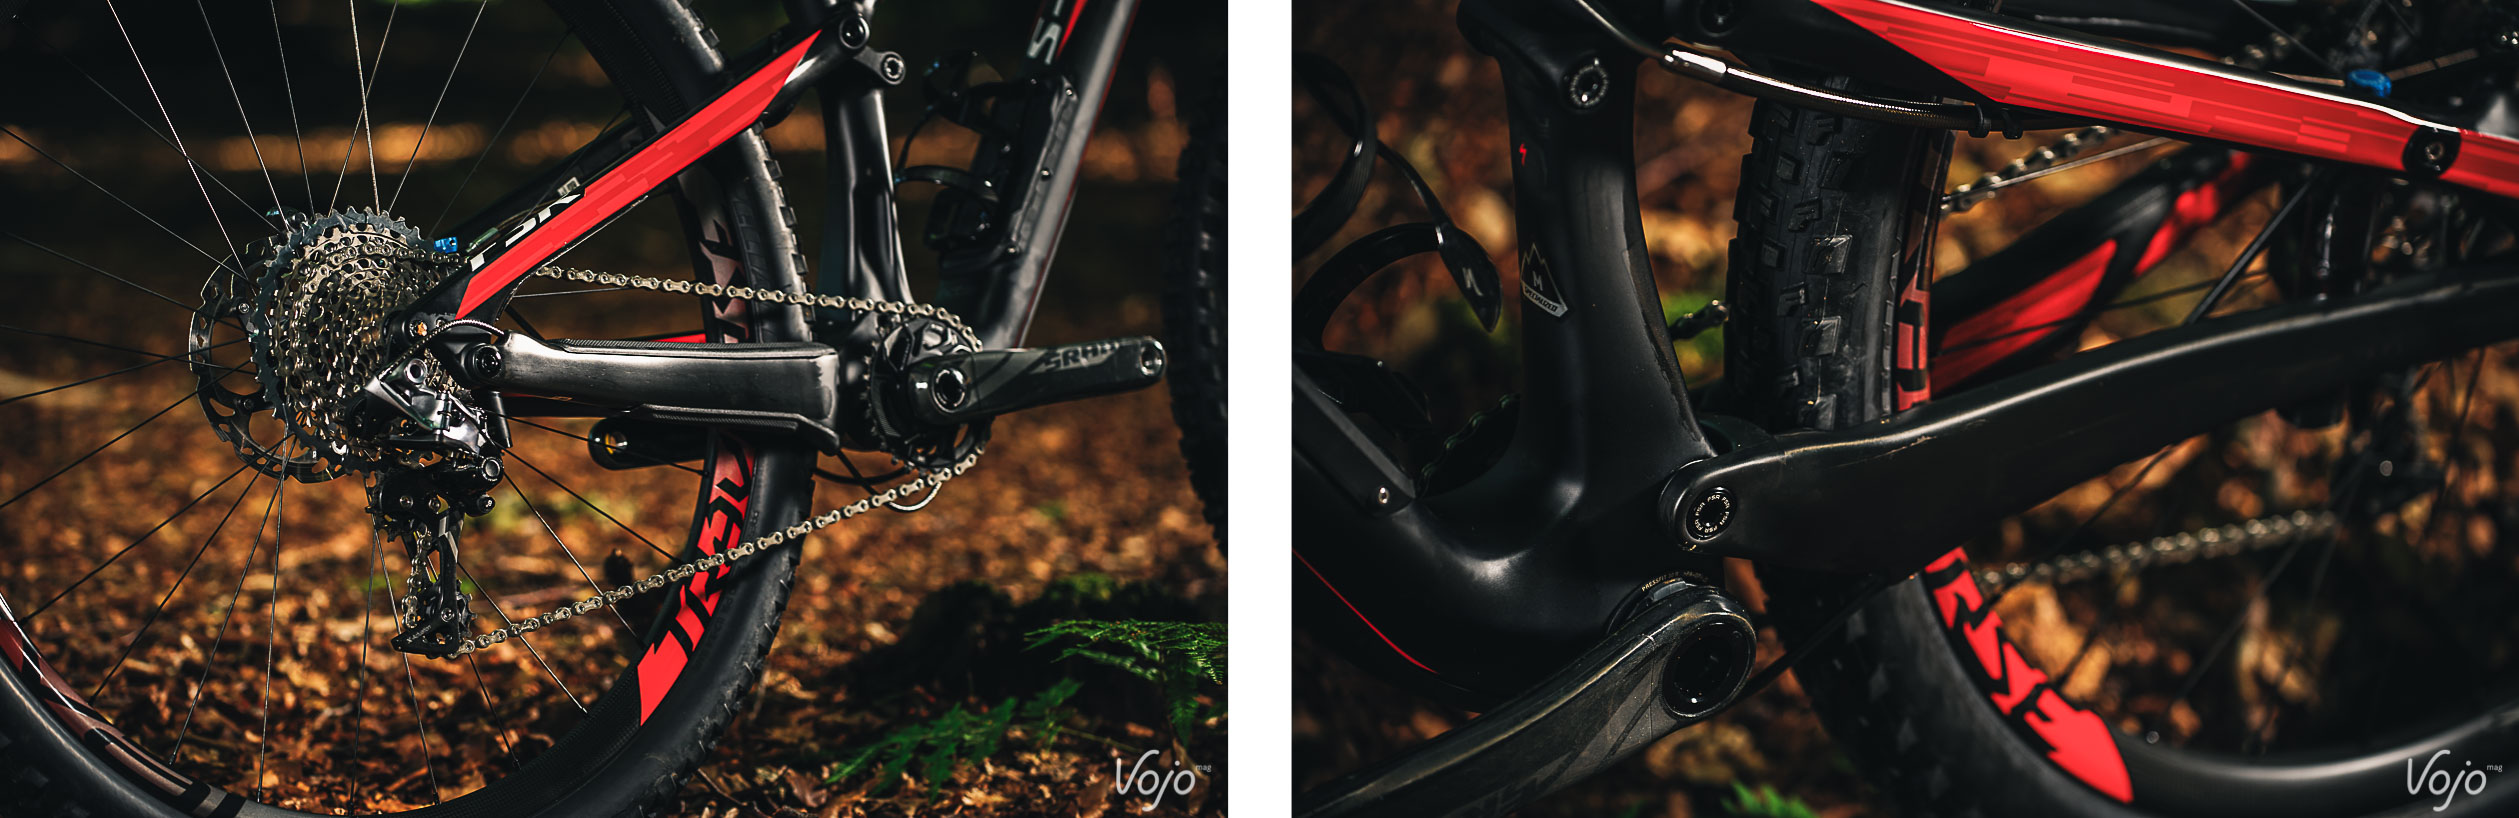 3-Specialized_Camber_2016_Copyright_OBeart_VojoMag